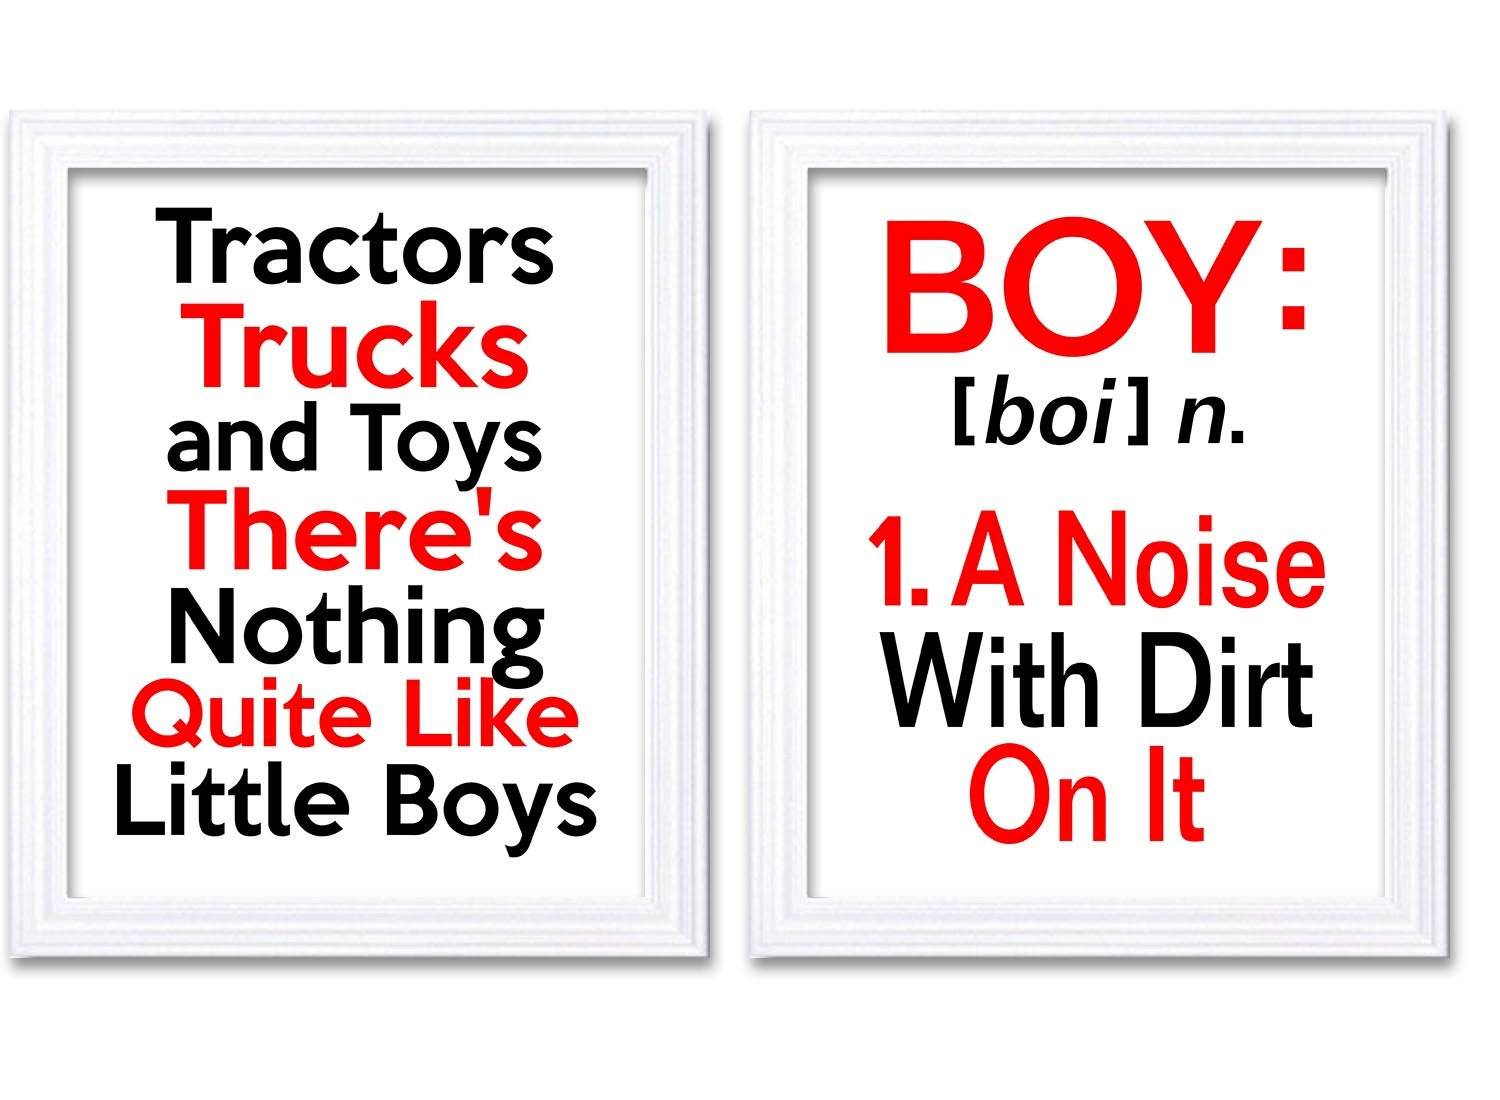 Nursery Art Tractors Trucks Toys Theres Nothing Quite Like Little Boys Prints Set of 2 Red Black BOY